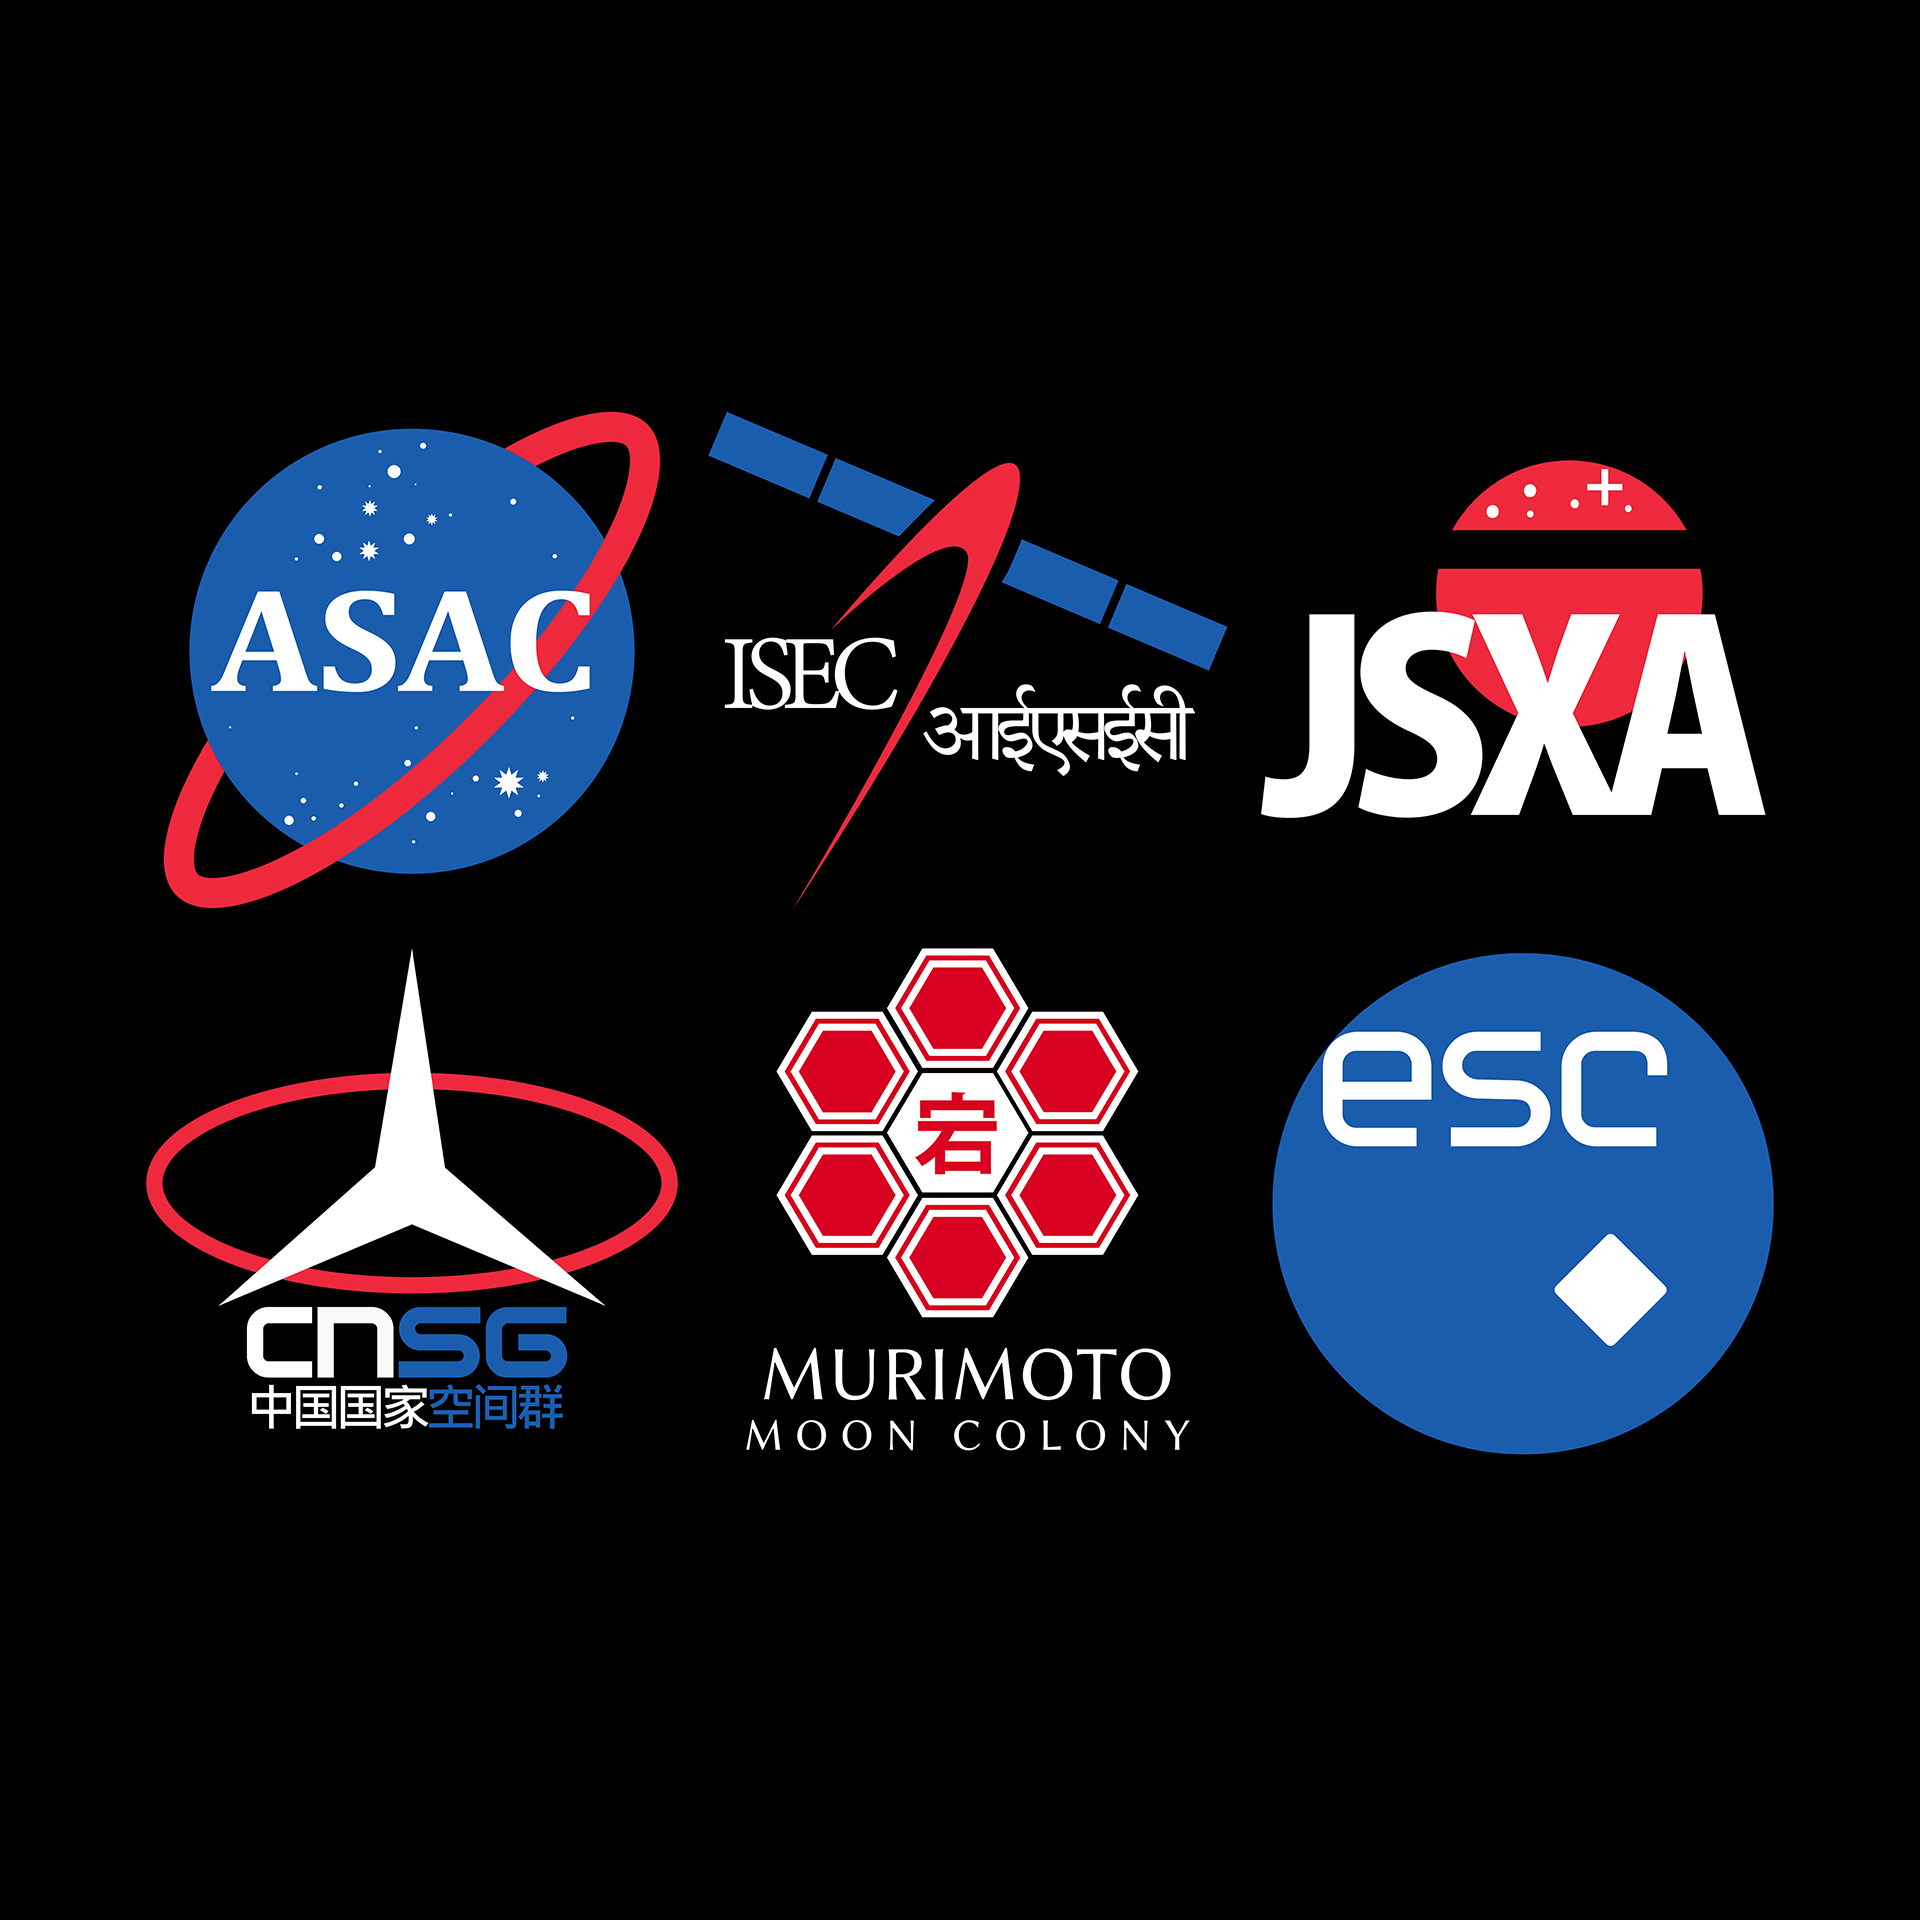 space agency logo image - sea of tranquility